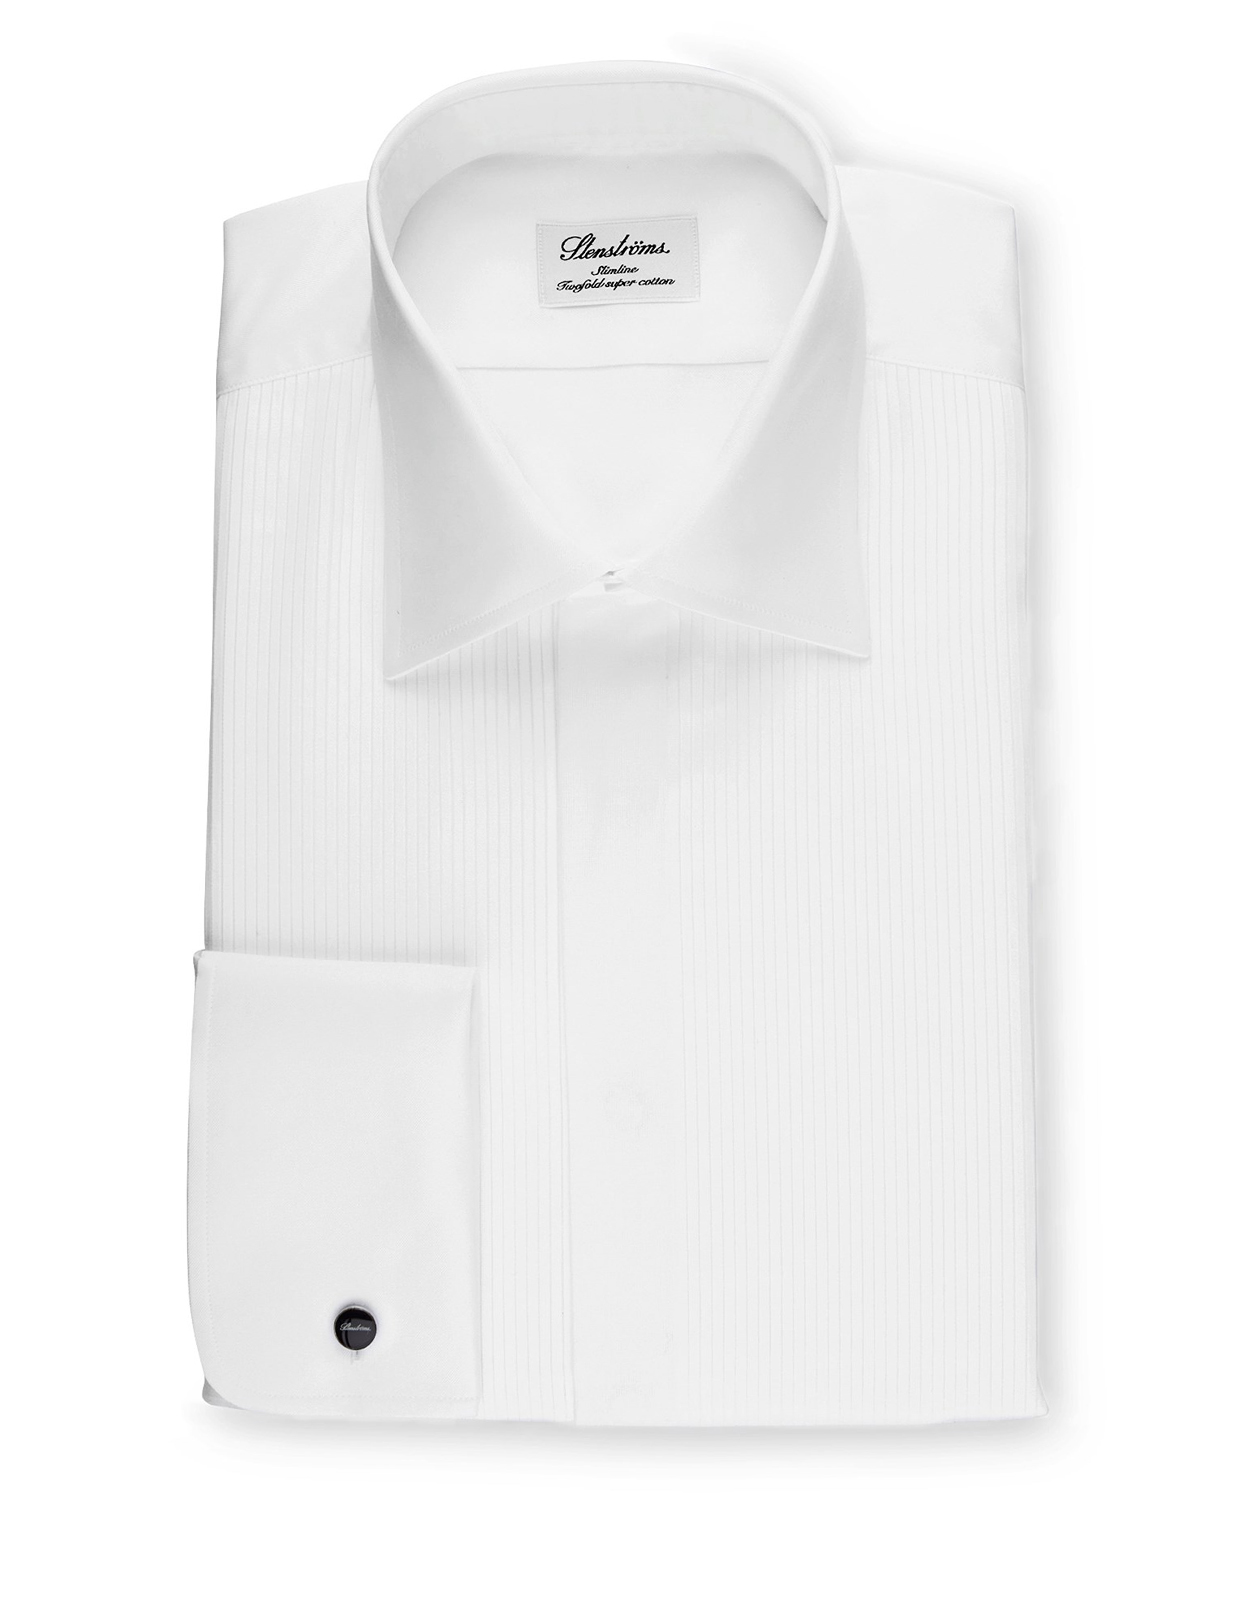 Slimline Tuxedo Shirt With Classic Collar Vit